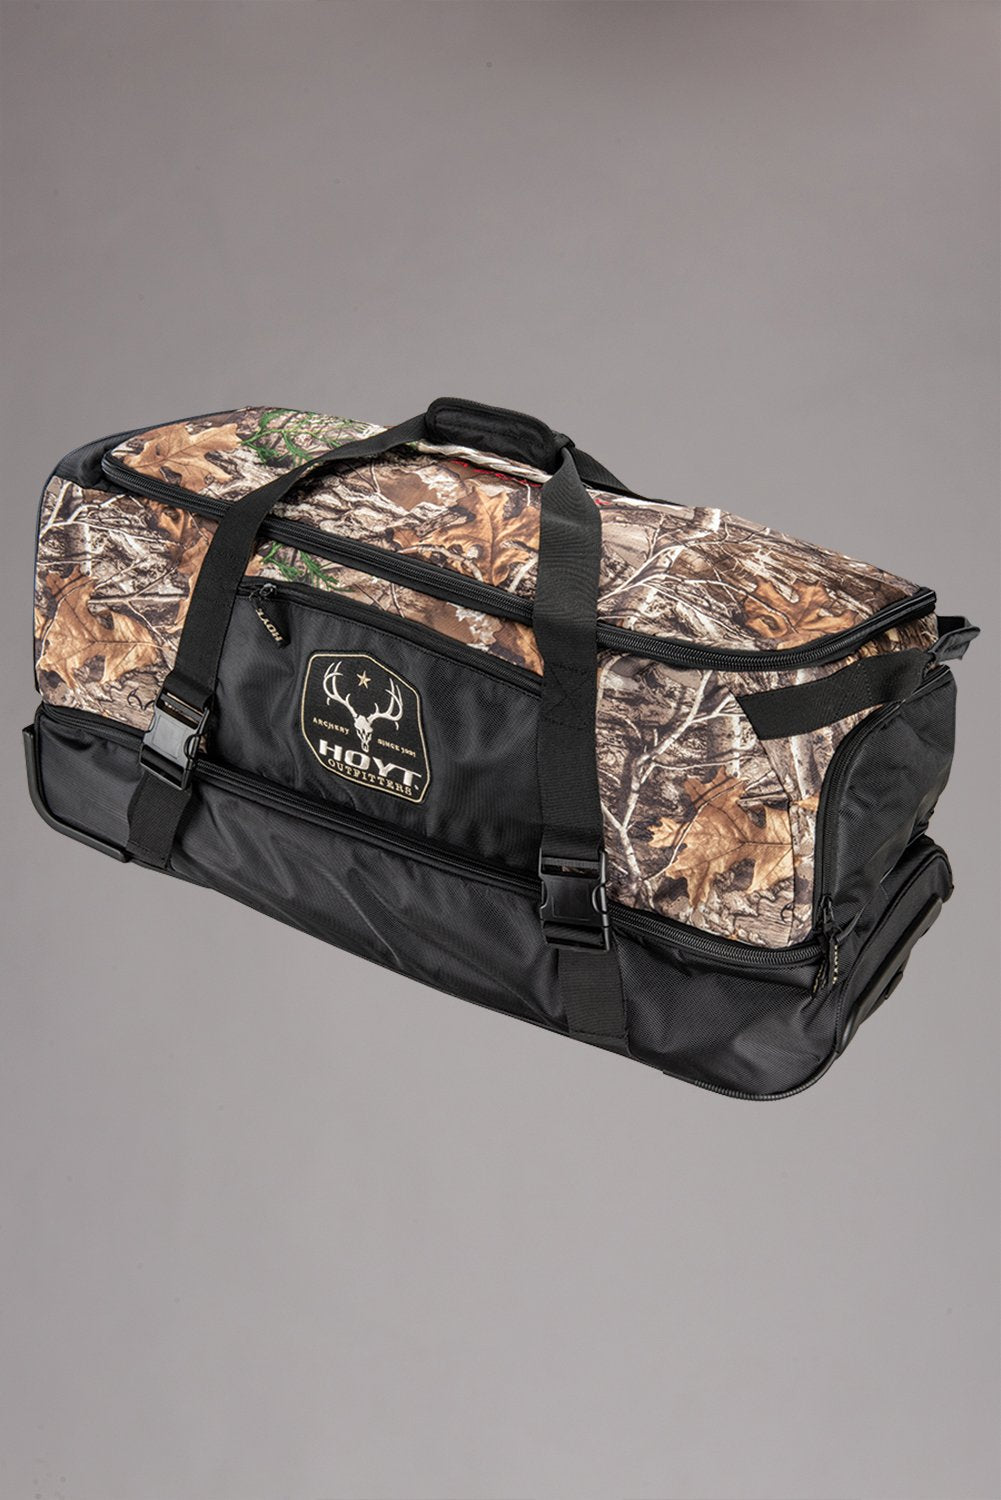 Hoyt Dual Outfitter Duffel Bag